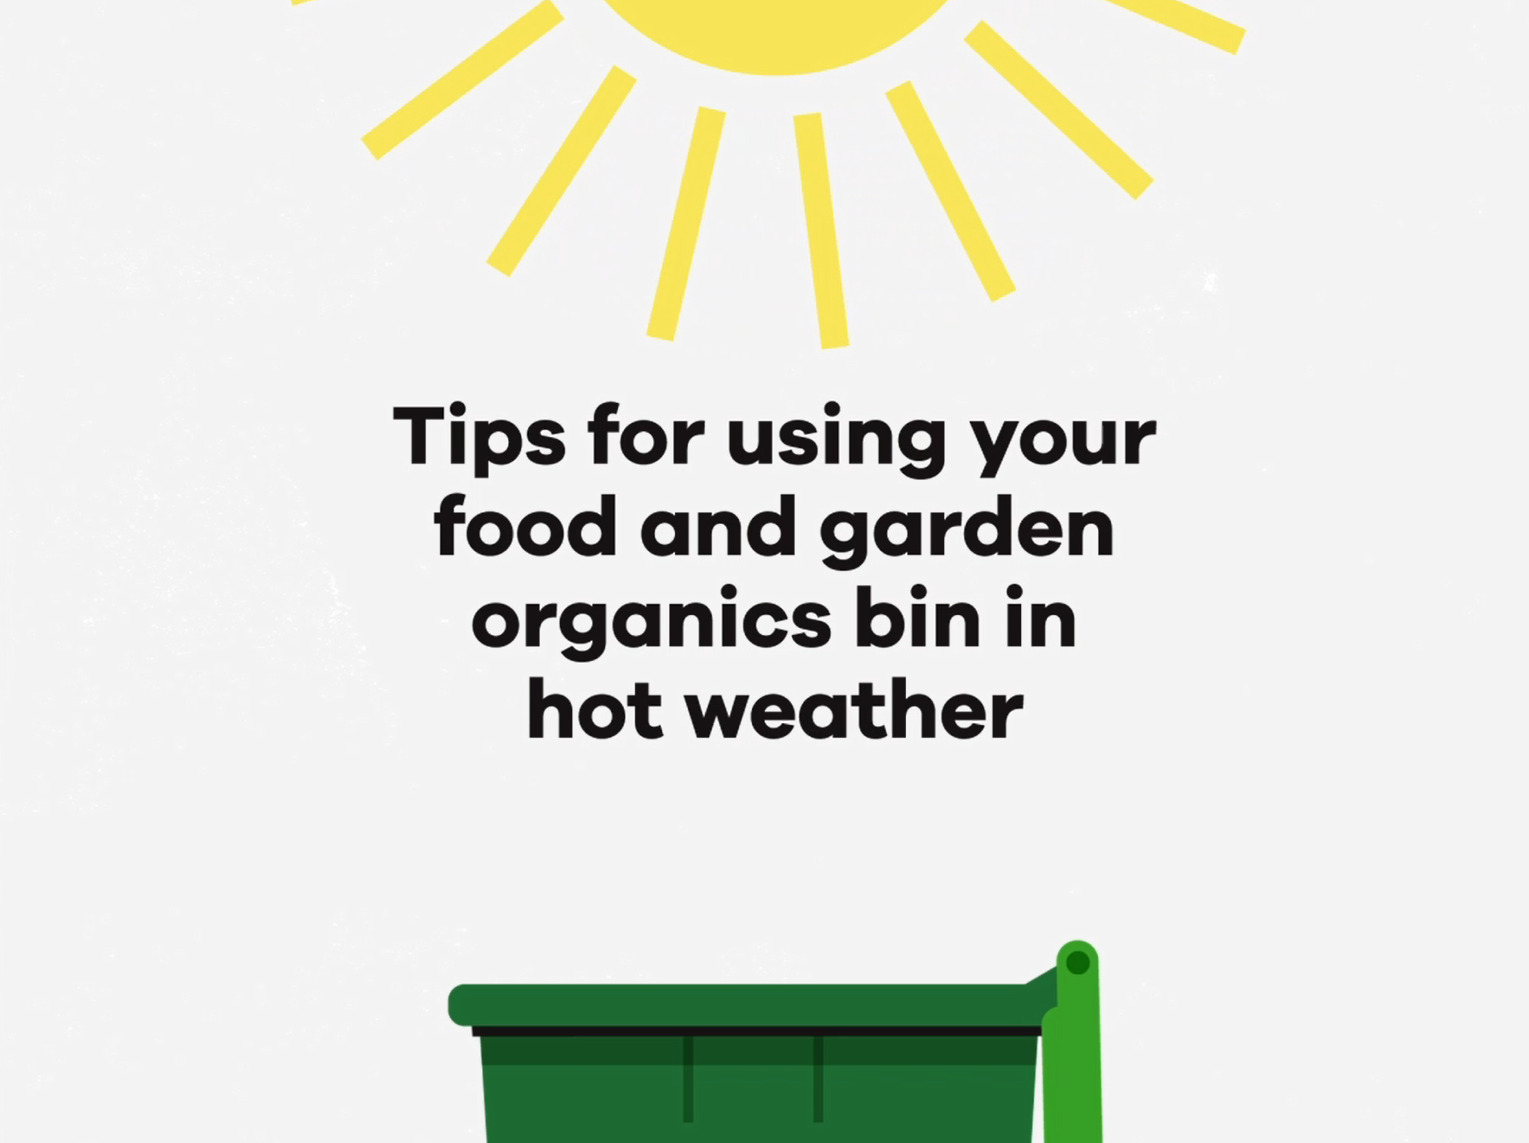 Clikc here to play video of tip to using your FOGO bin in hot weather